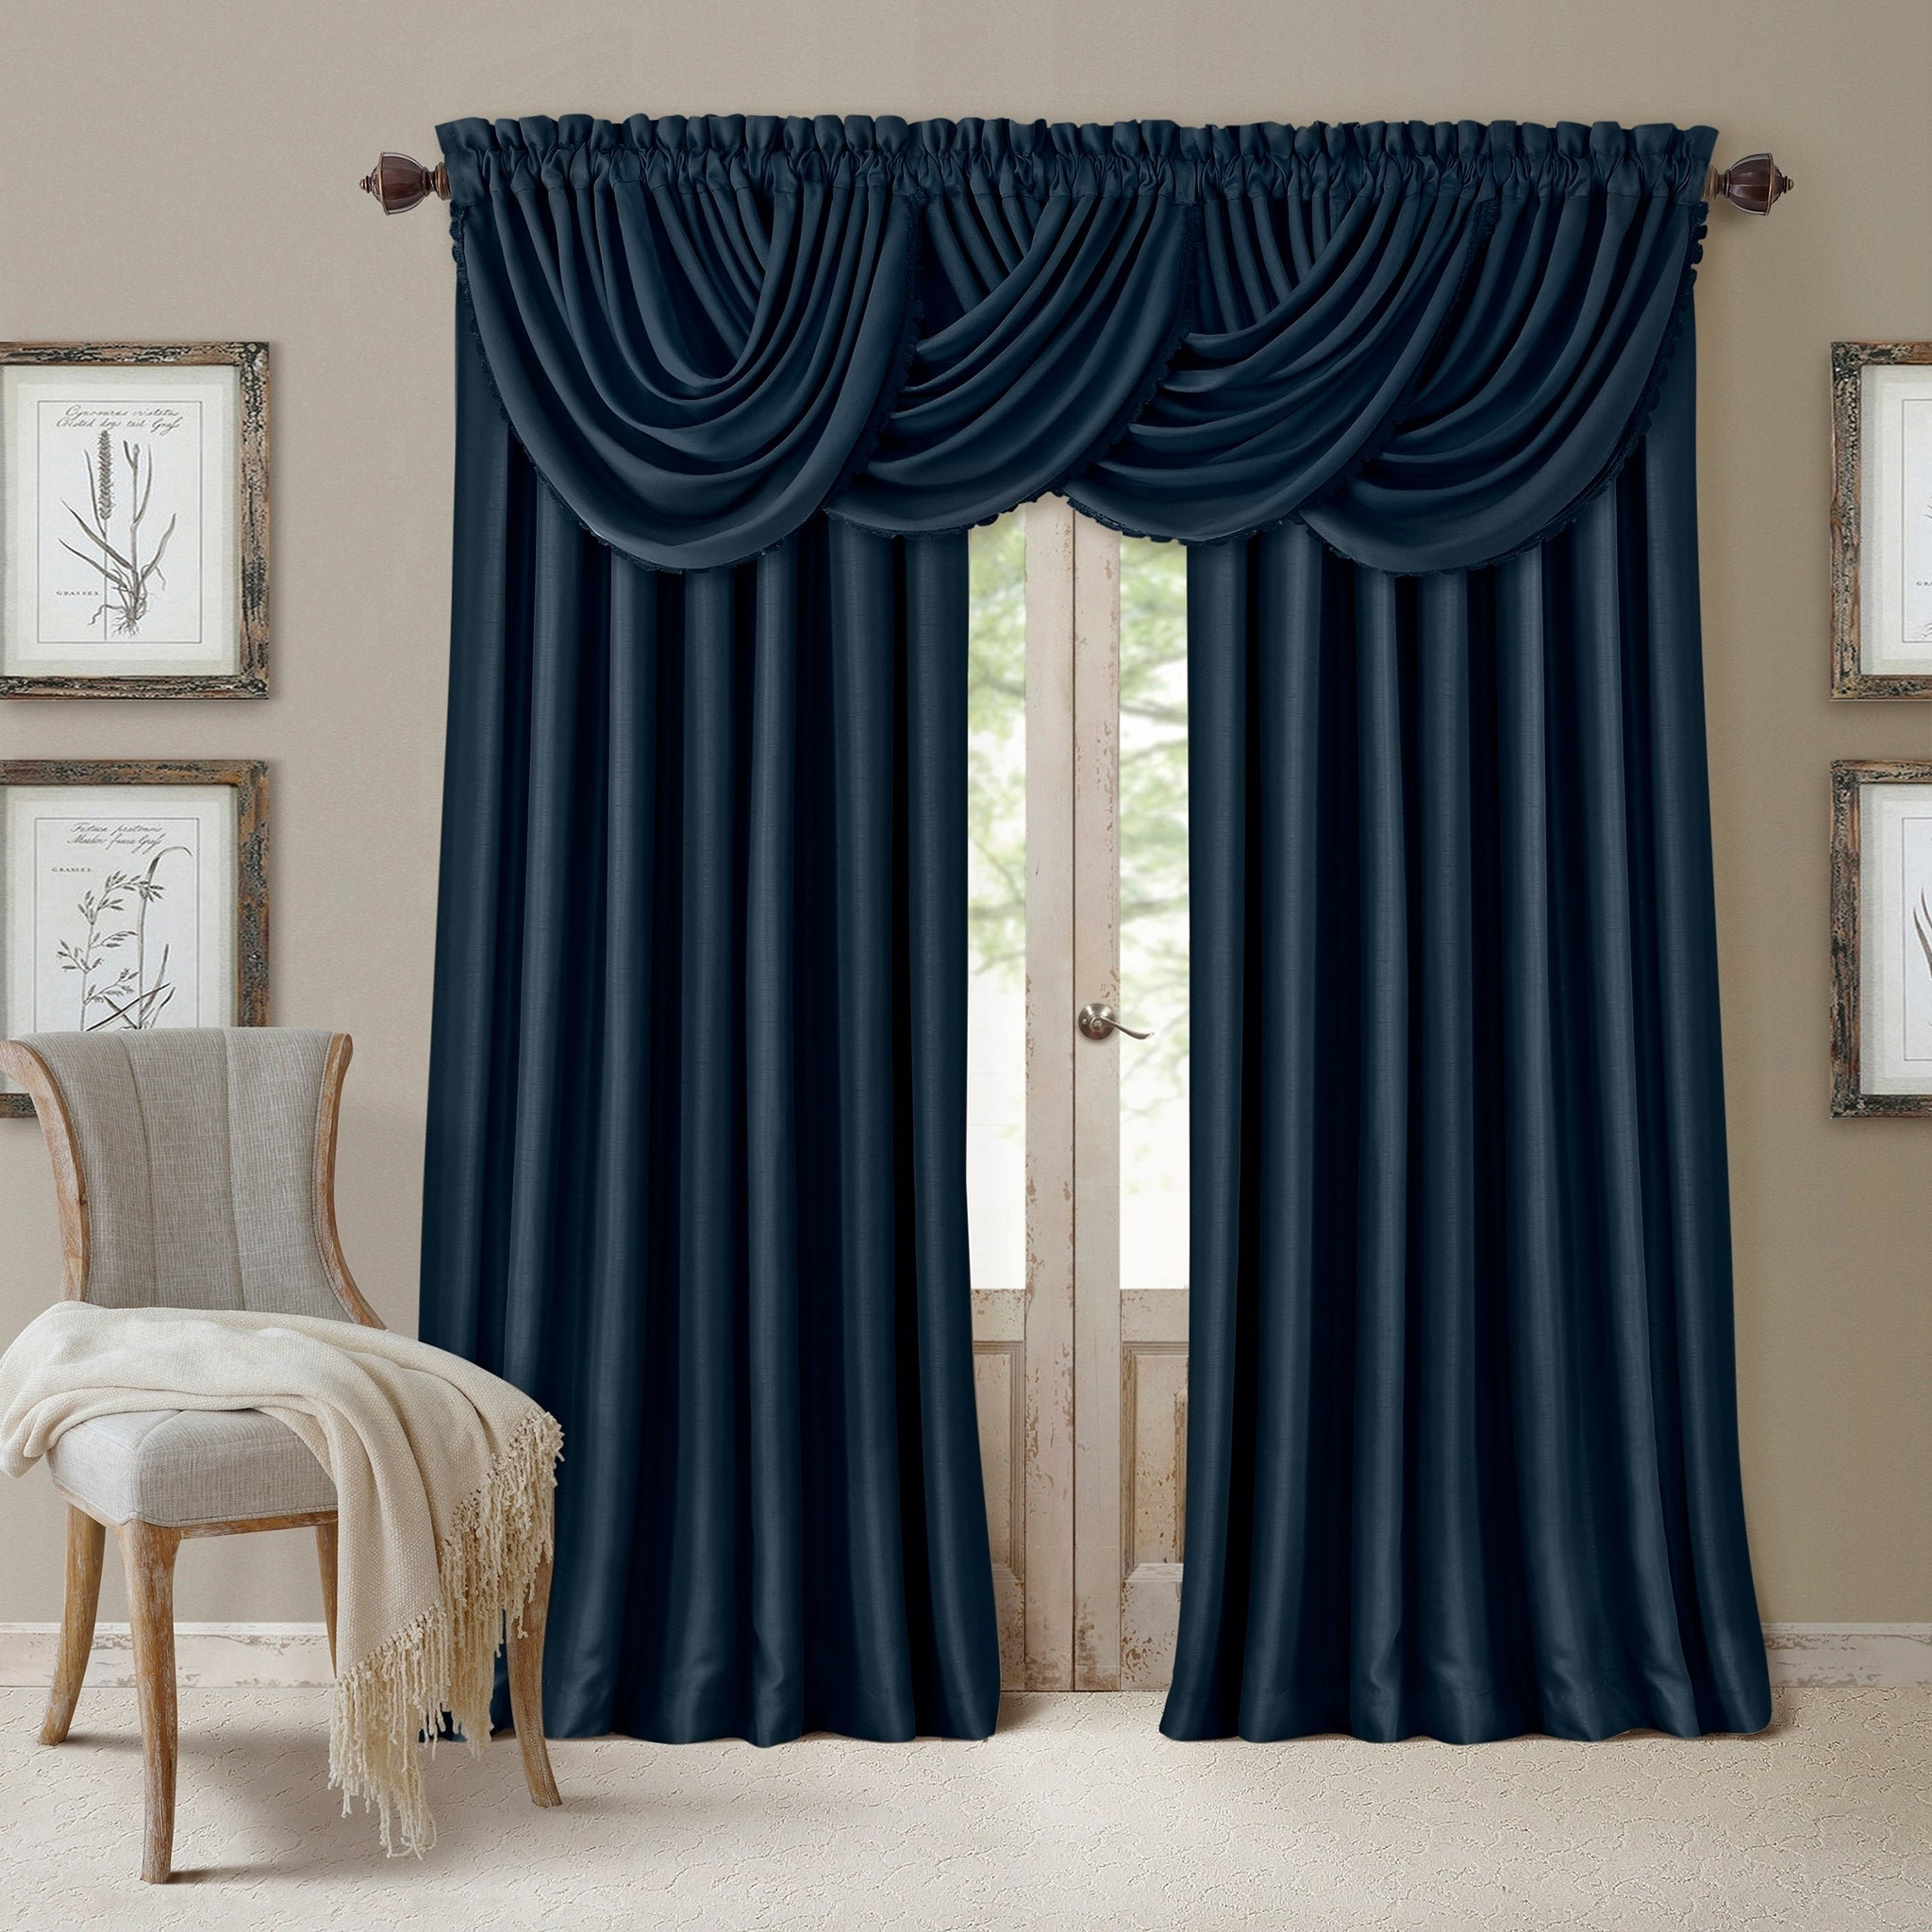 Shop Black Friday Deals On All Seasons Waterfall Window Valance 52 X36 Overstock 14741344